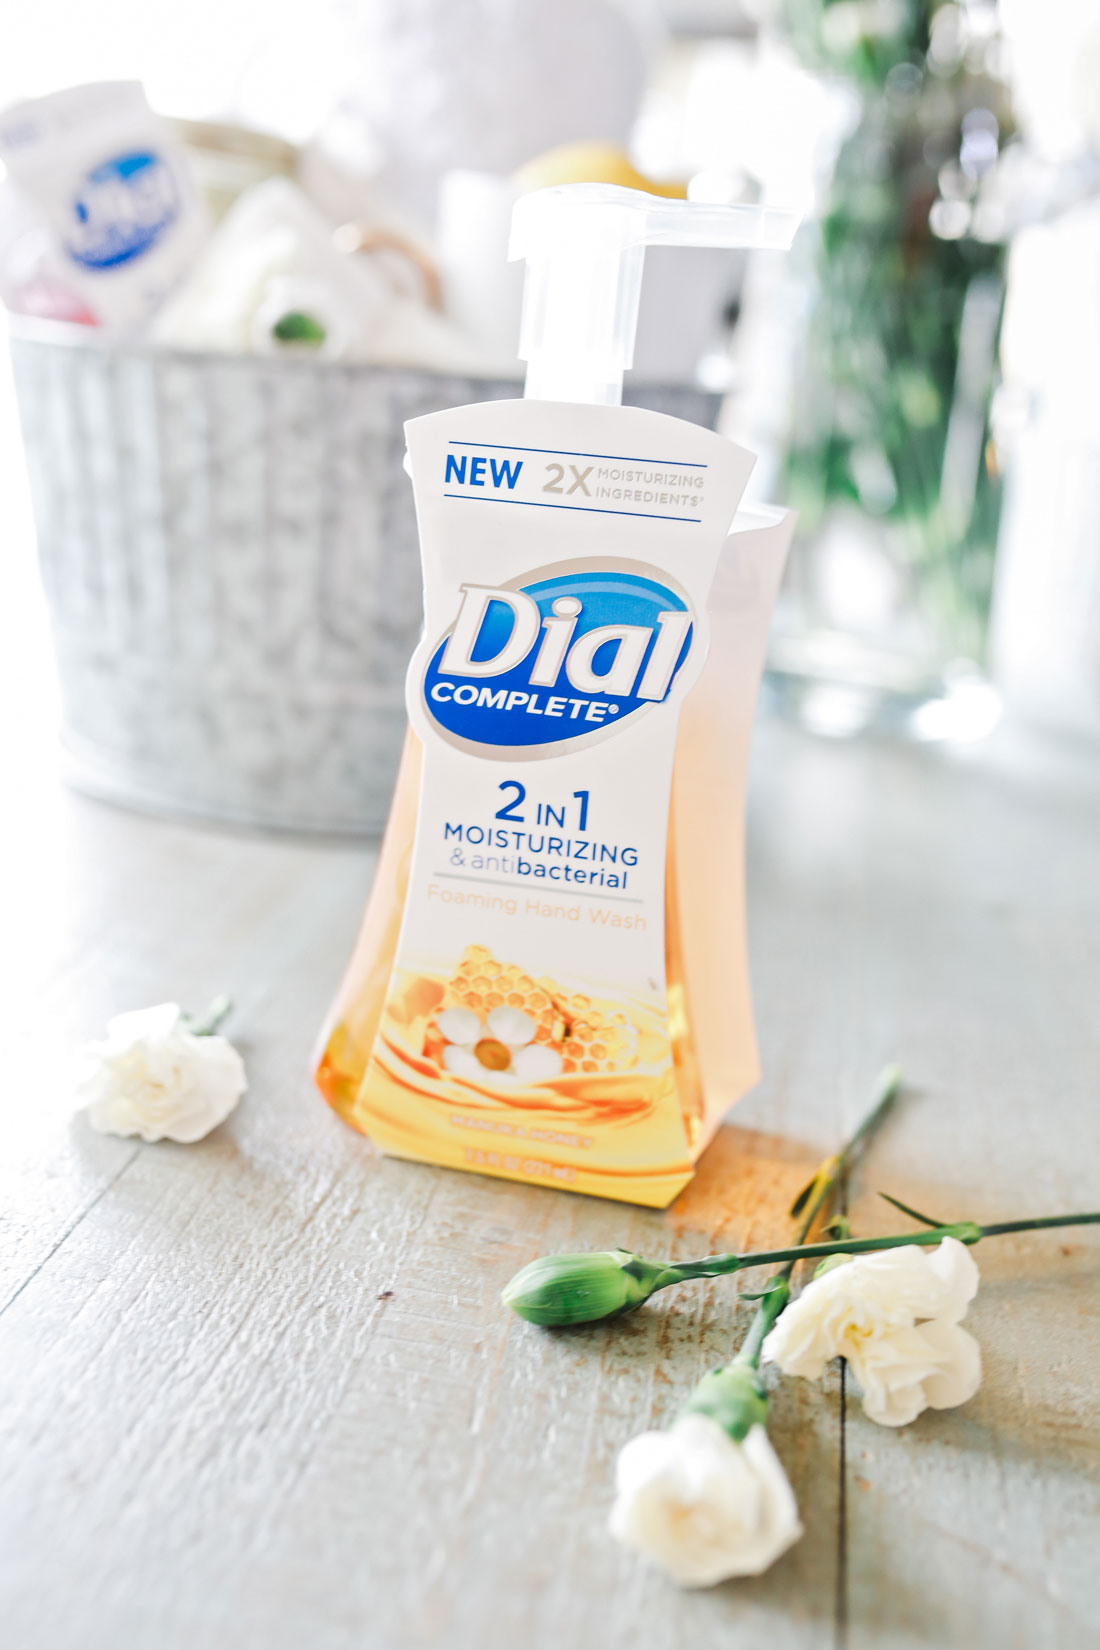 One of the biggest complaints about hand soaps is that they dry out skin. This unique formula from Dial® ensures that your hands stay clean and moisturized after each wash.